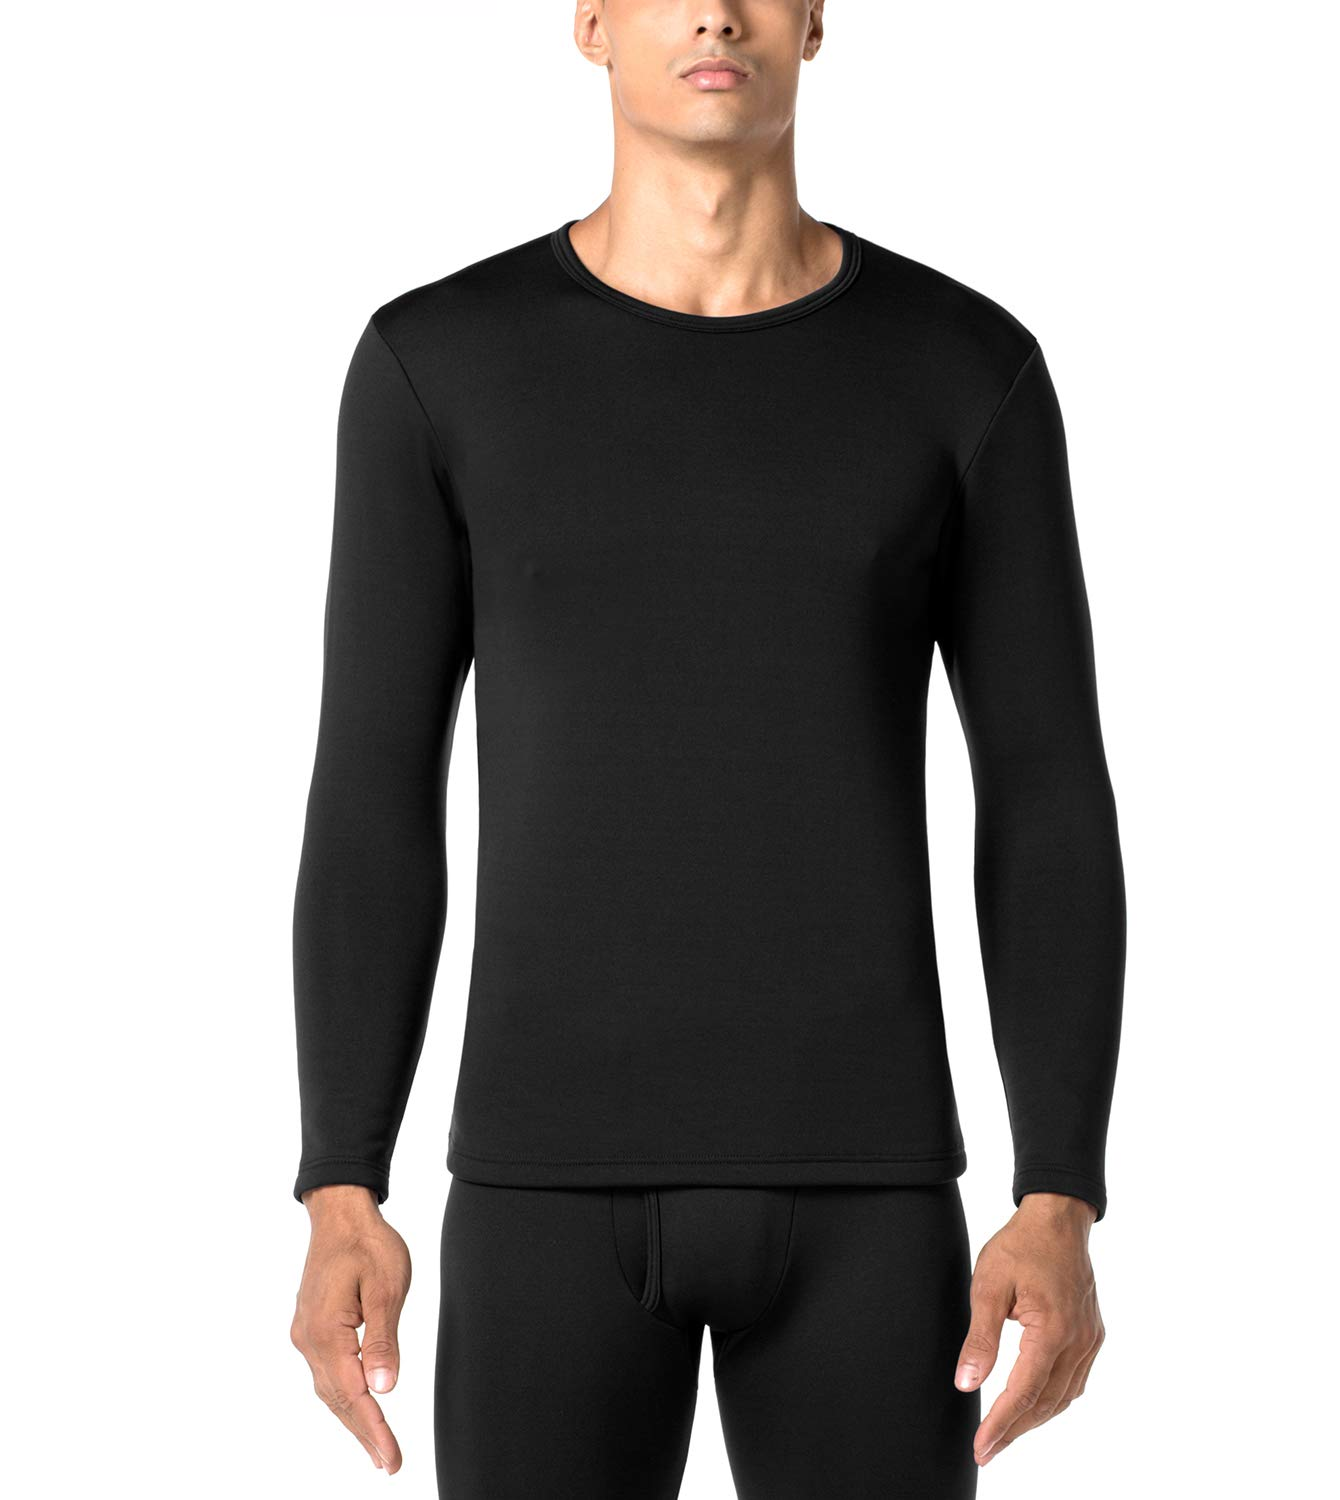 LAPASA Men's Heavyweight Thermal Underwear Top Fleece Lined Base Layer Long Sleeve Shirt M26 Black,XXL Chest 47''-49'' Sleeve 25.2'' by LAPASA